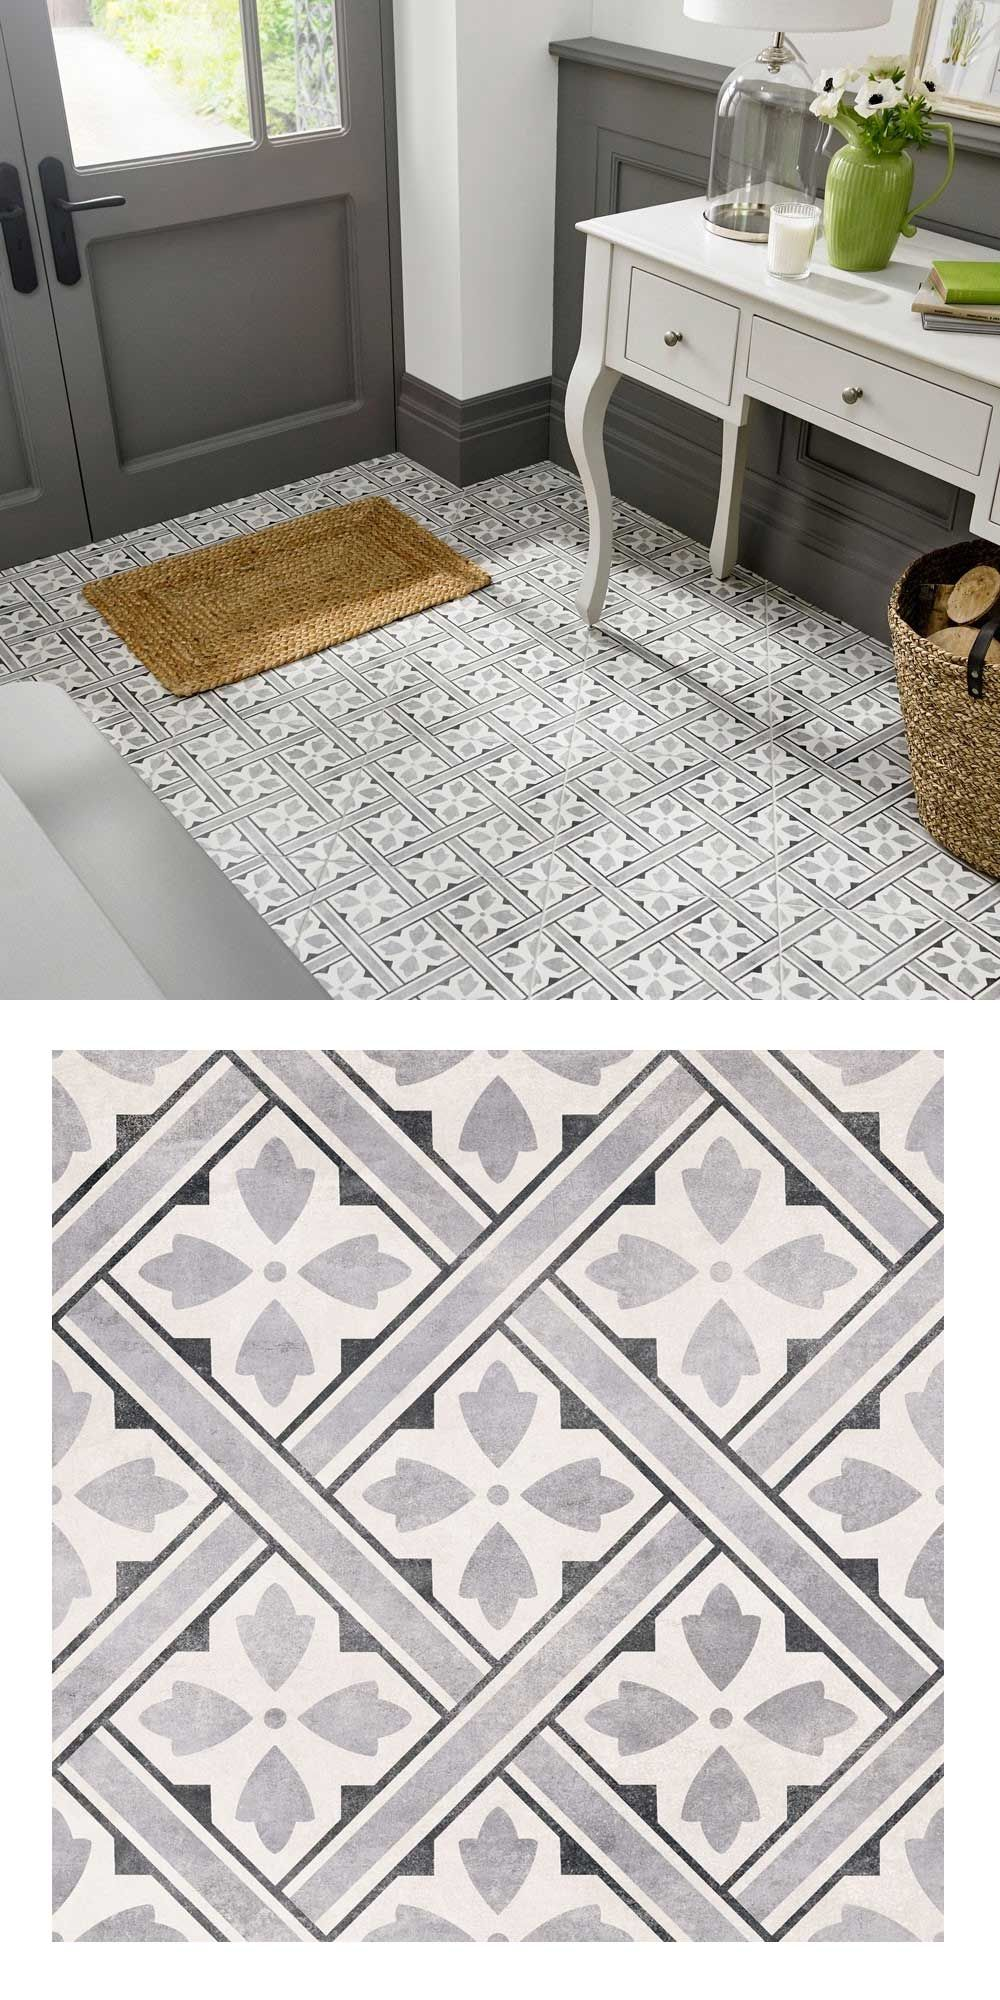 Create A Vintage Styled Statement Floor In Any Room Throughout The